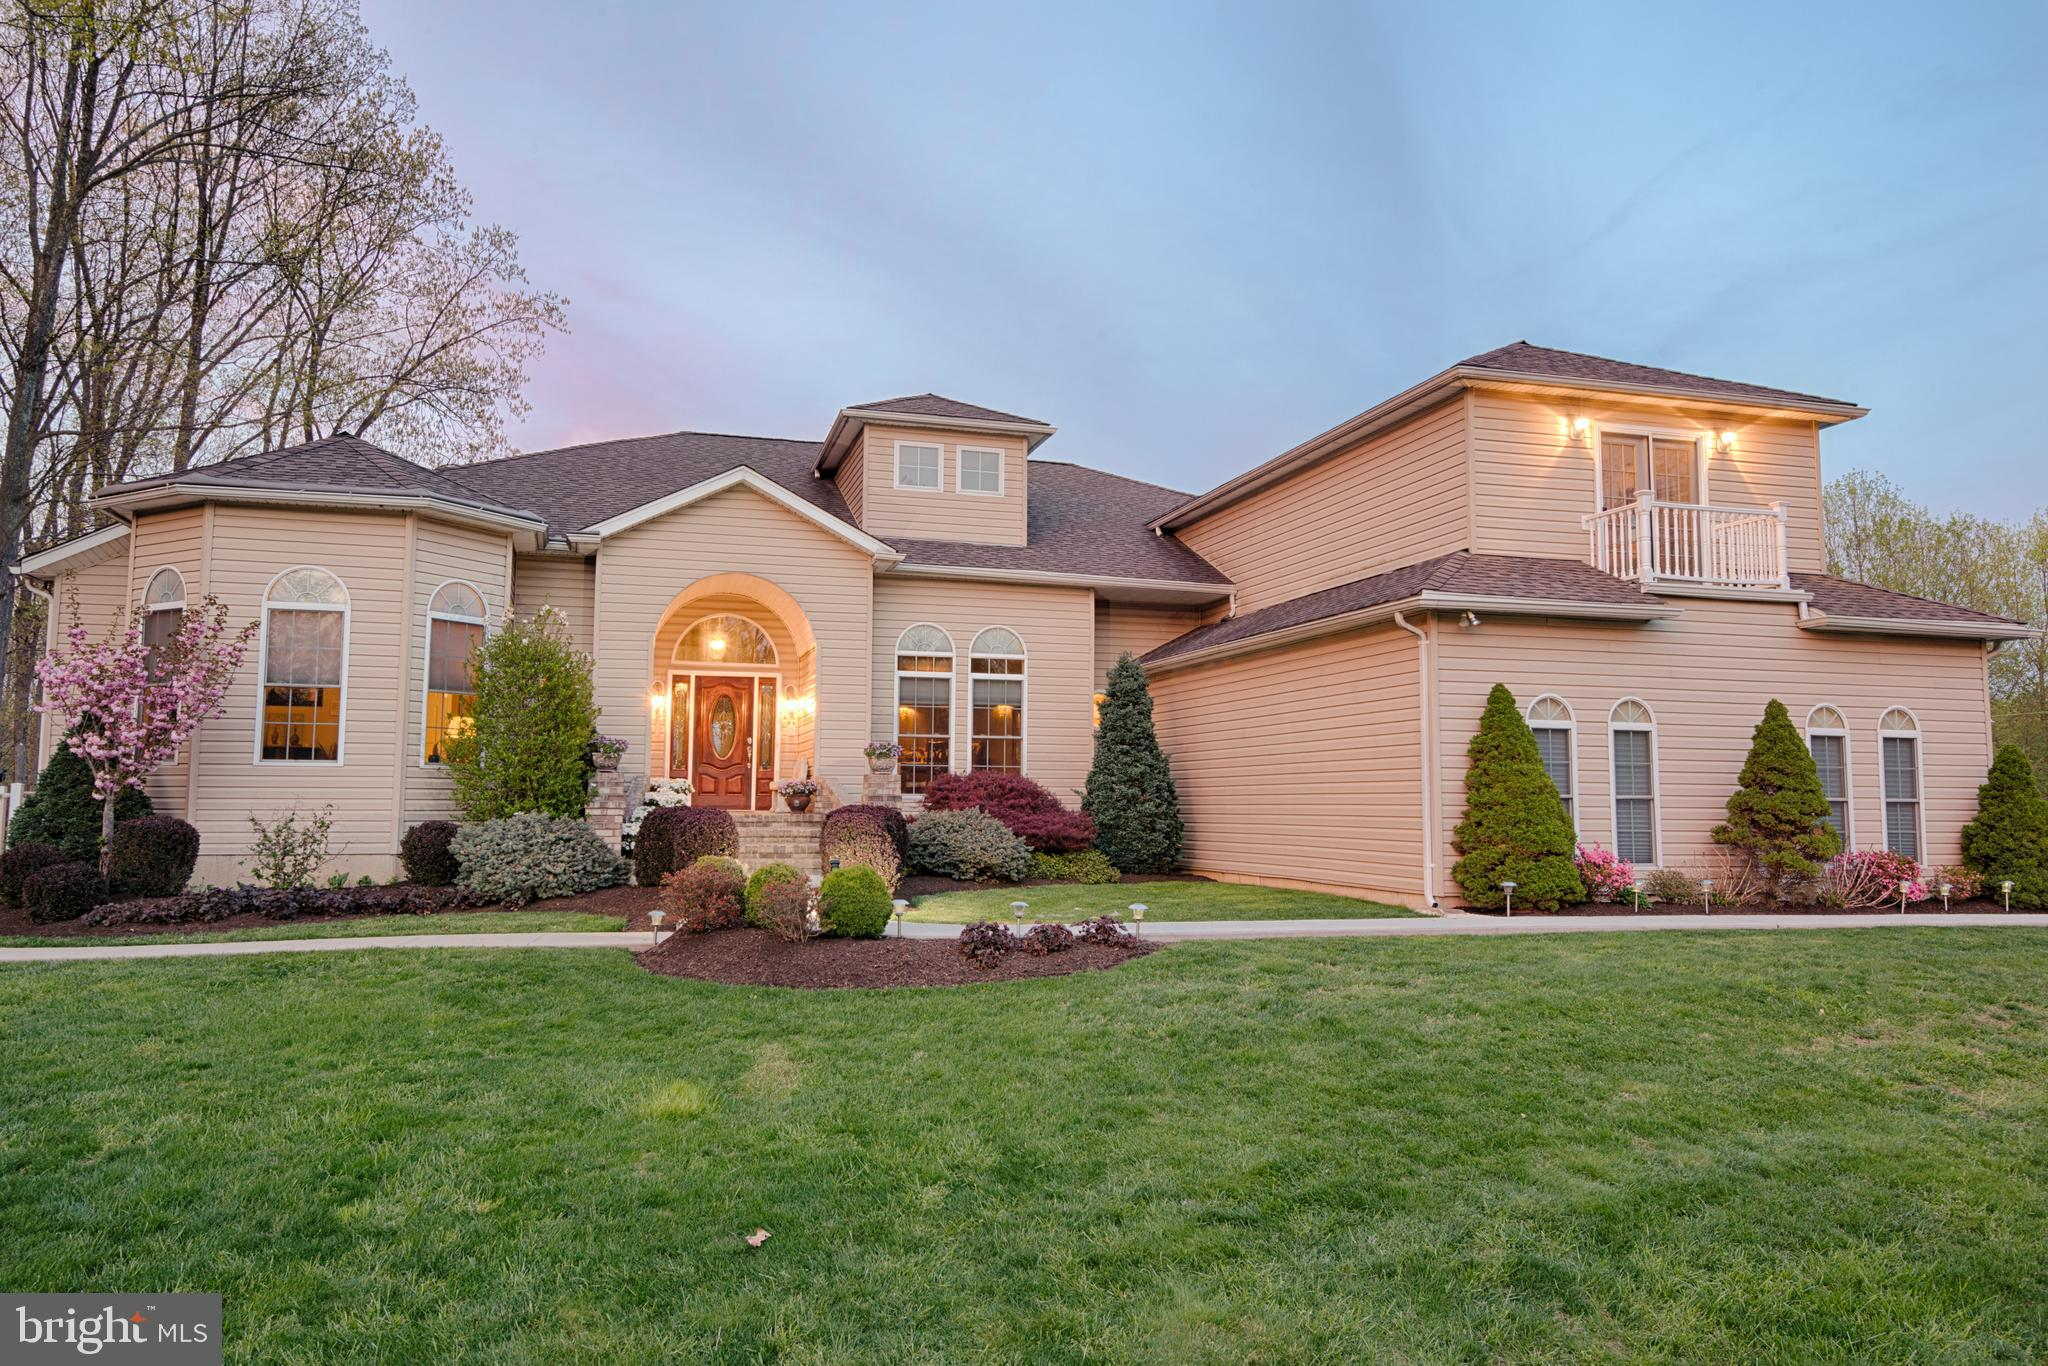 Spectacular Views Surround this Magnificent 6+ Bedroom/6.5 Bath 7500+ square ft Custom Home nestled